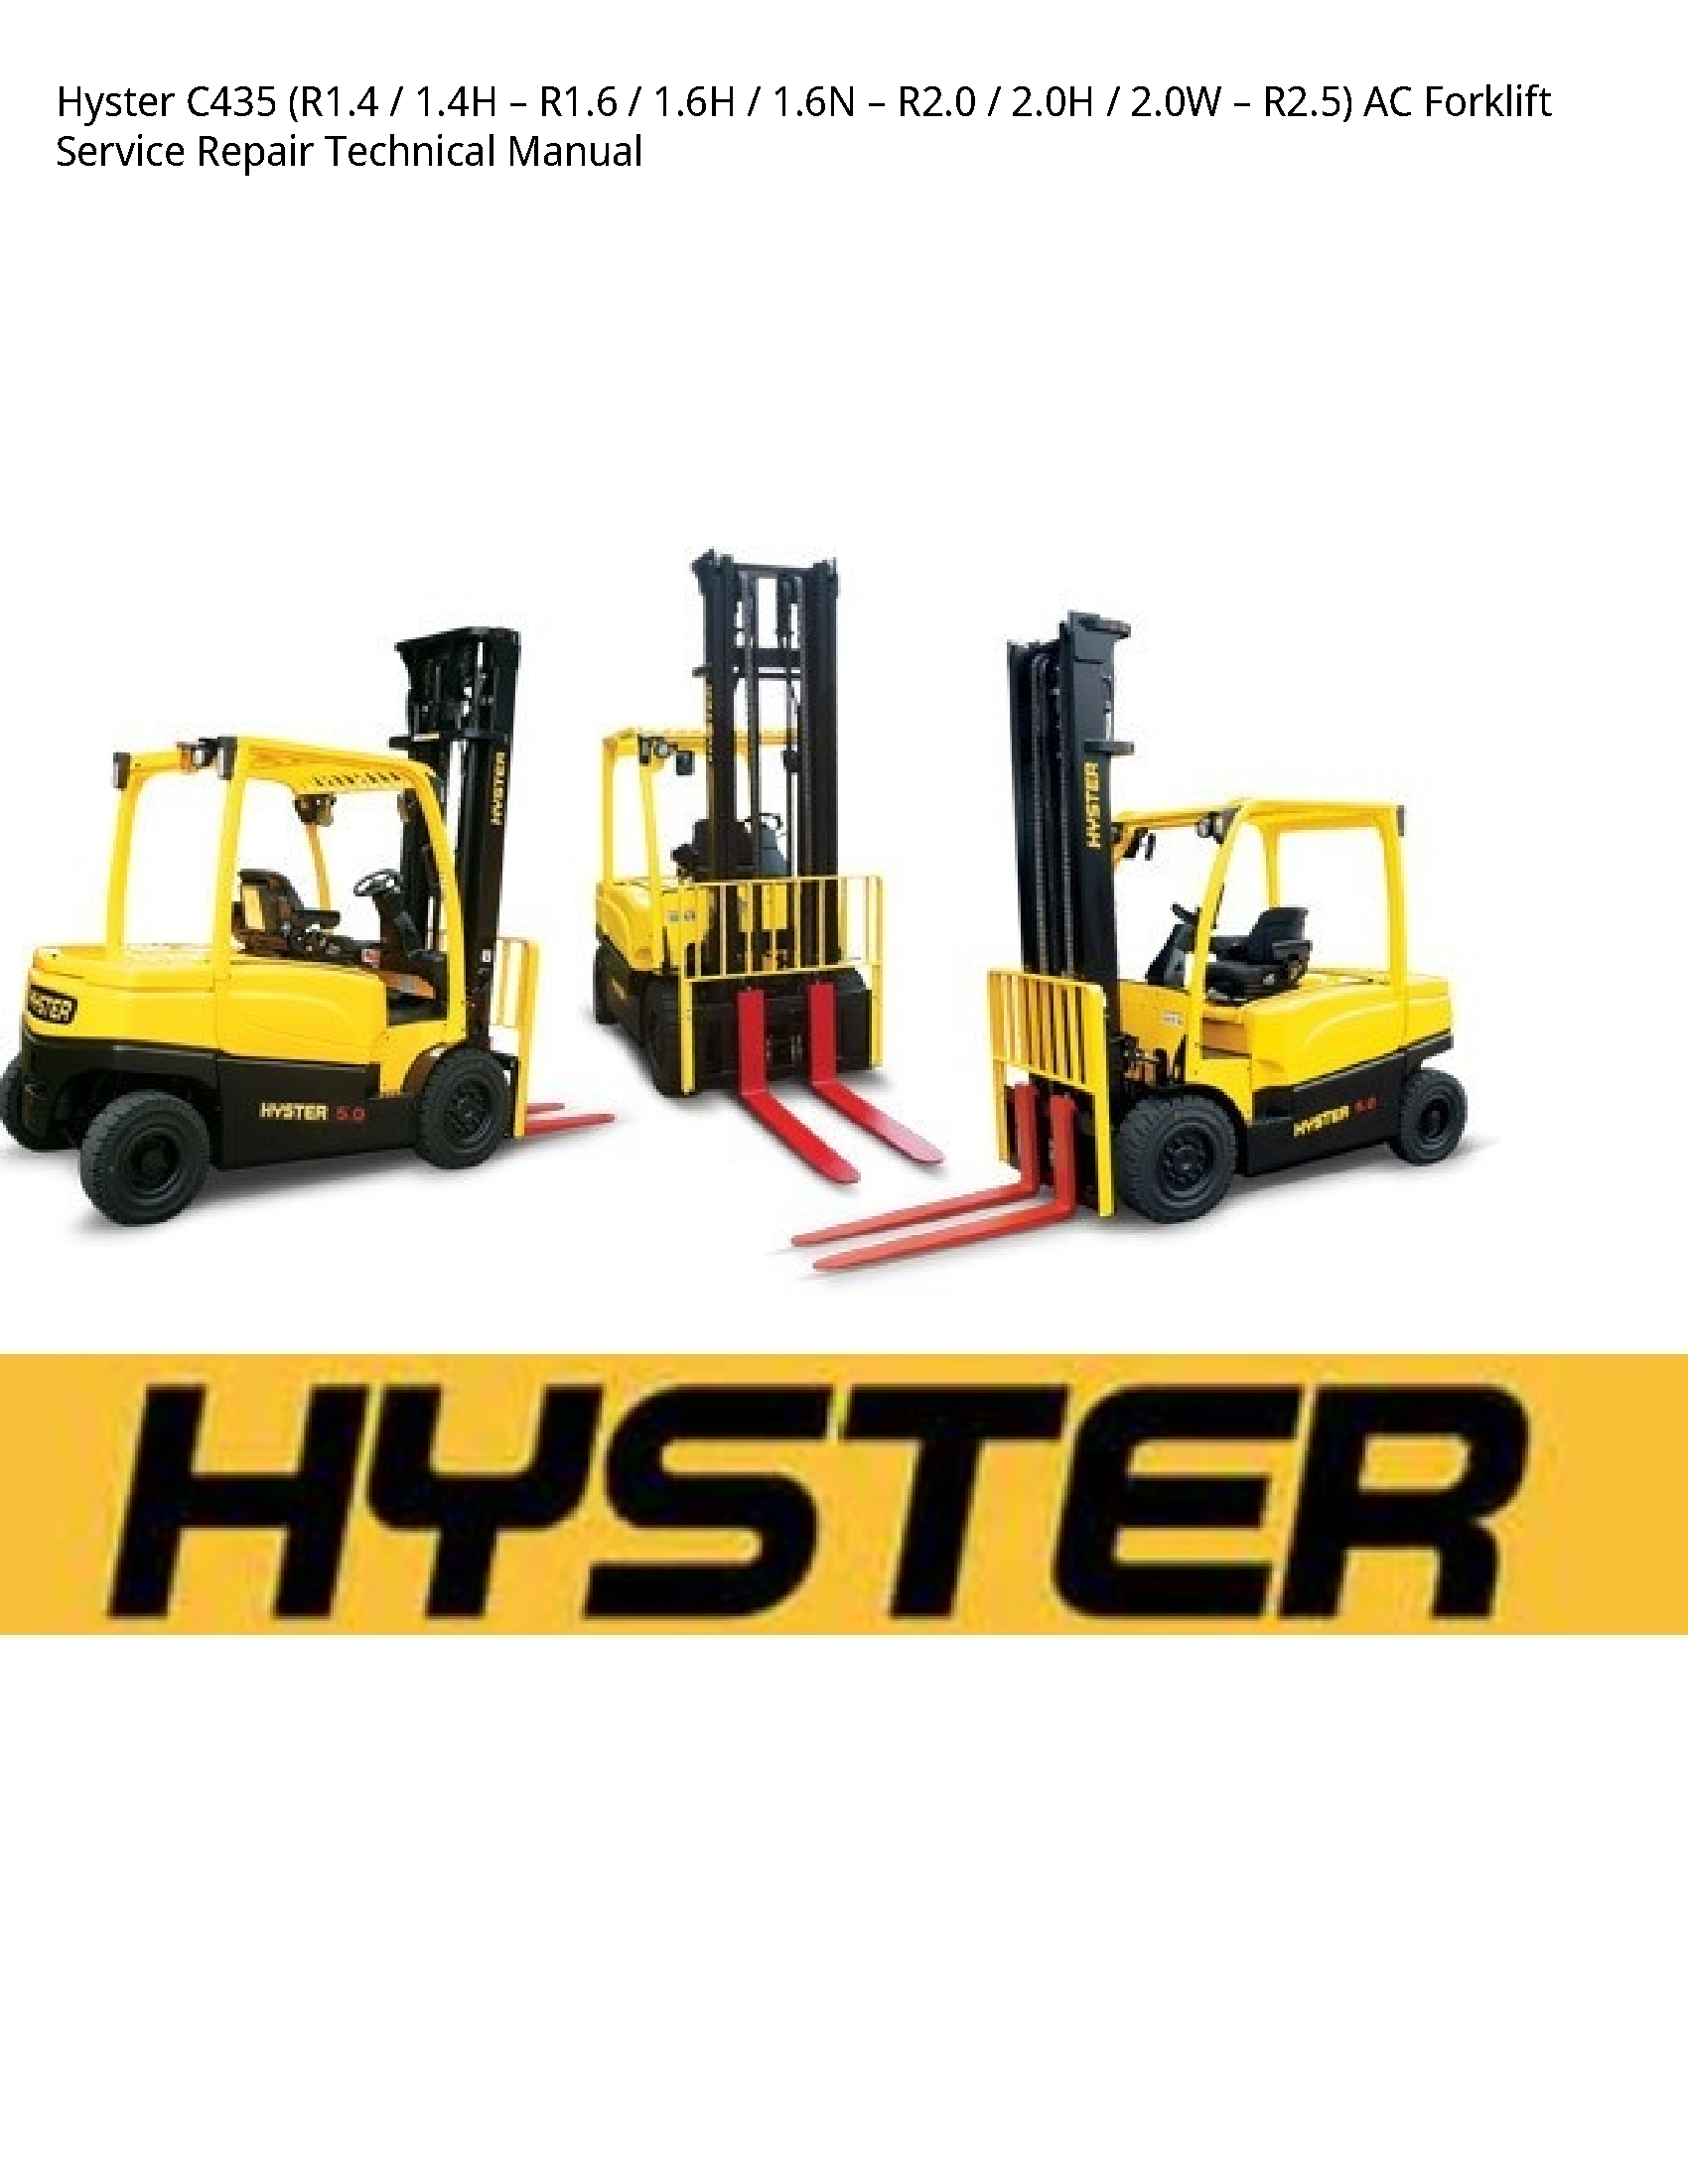 Hyster C435 AC Forklift manual